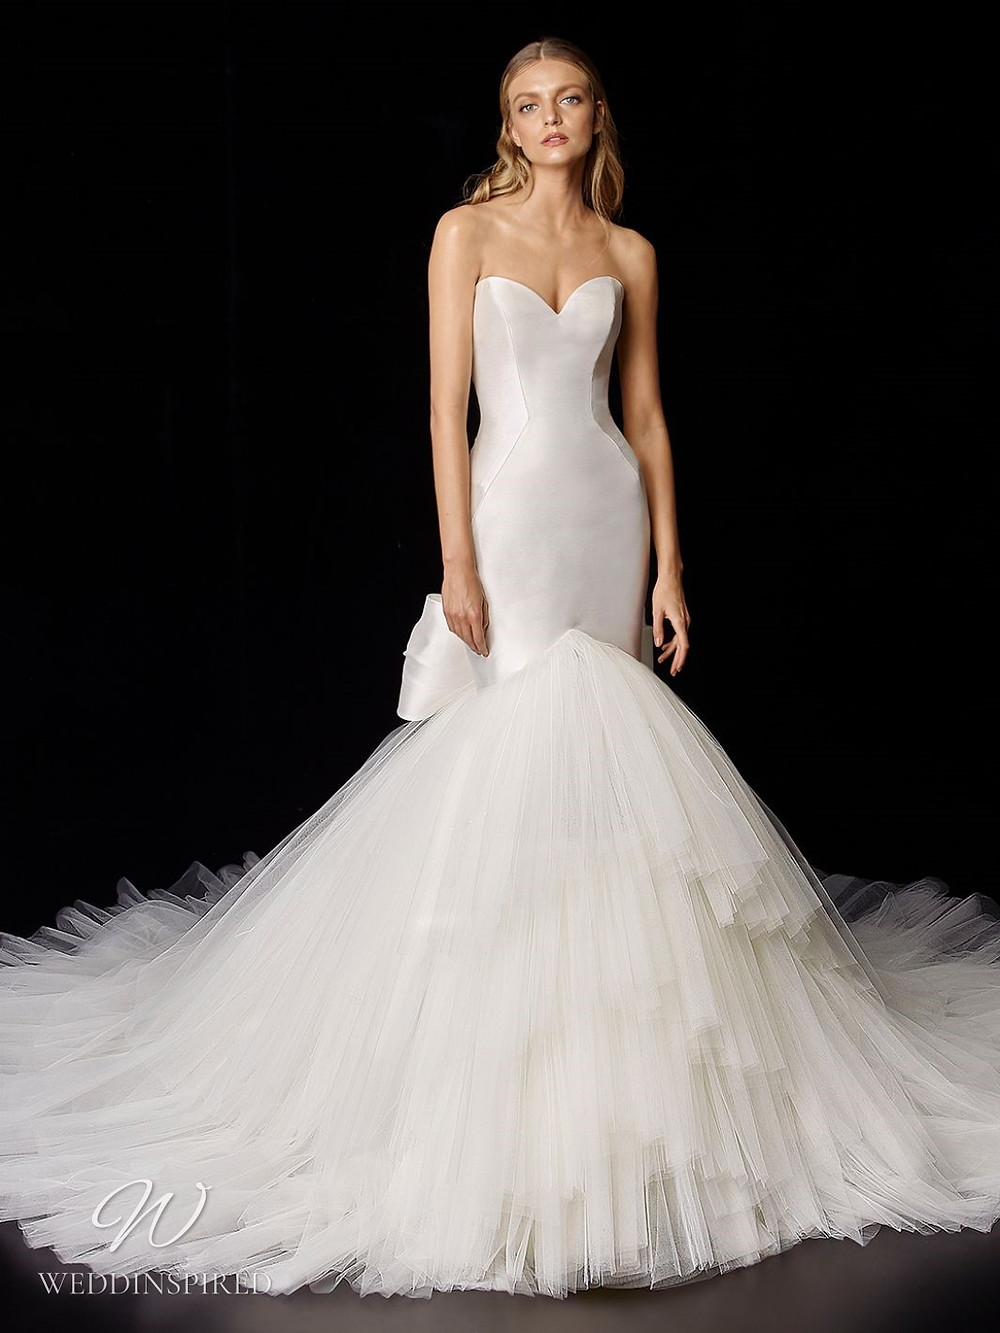 An Enzoani strapless silk mermaid wedding dress with a tulle skirt, a bow and a sweetheart neckline